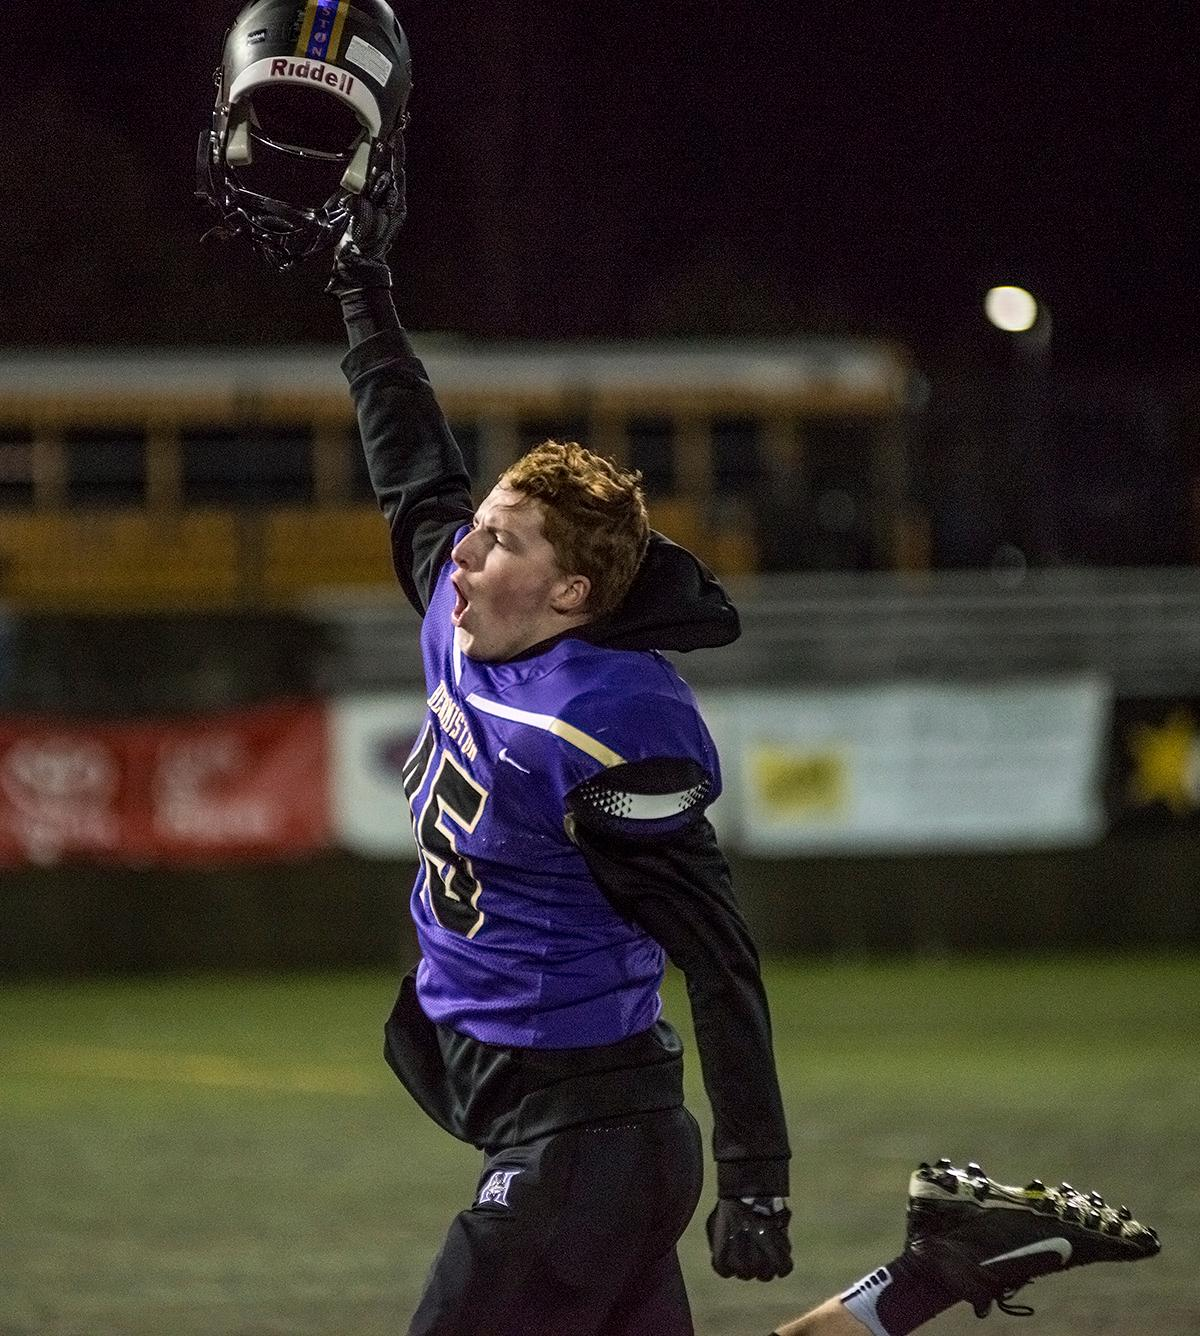 A Hermiston Bulldogs player celebrates his team's win.The Hermiston Bulldogs defeated the Churchill Lancers 38-35 for the 5A state title Saturday evening at Hillsboro Stadium. Photo by Abigail Winn, Oregon News Lab